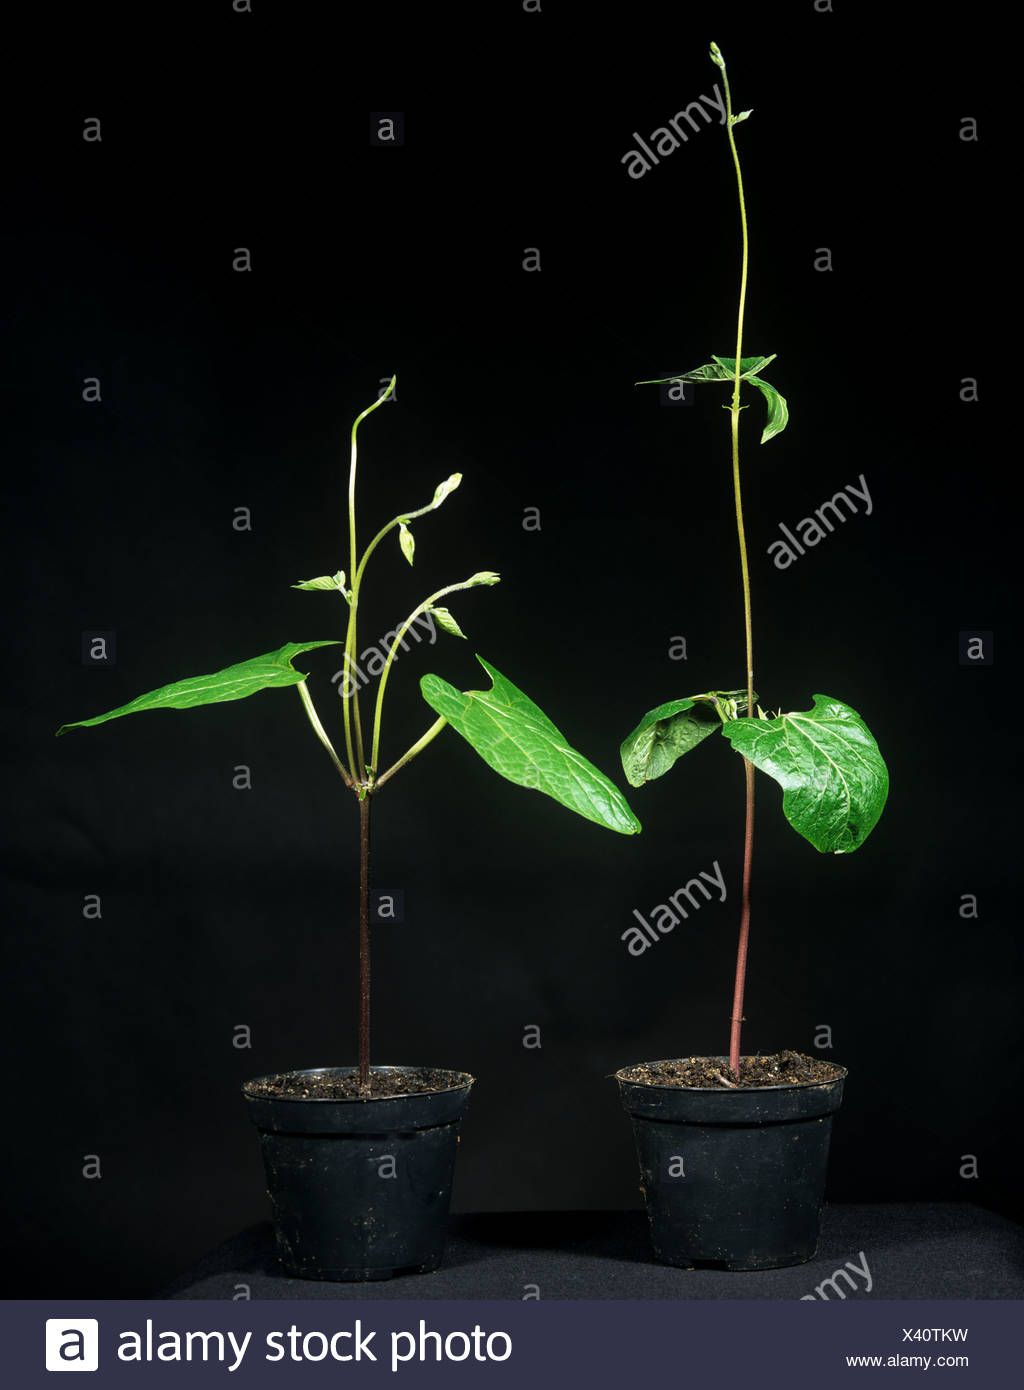 Apical dominance, comparing two runner bean plants where one has had the growing point removed - Stock Image